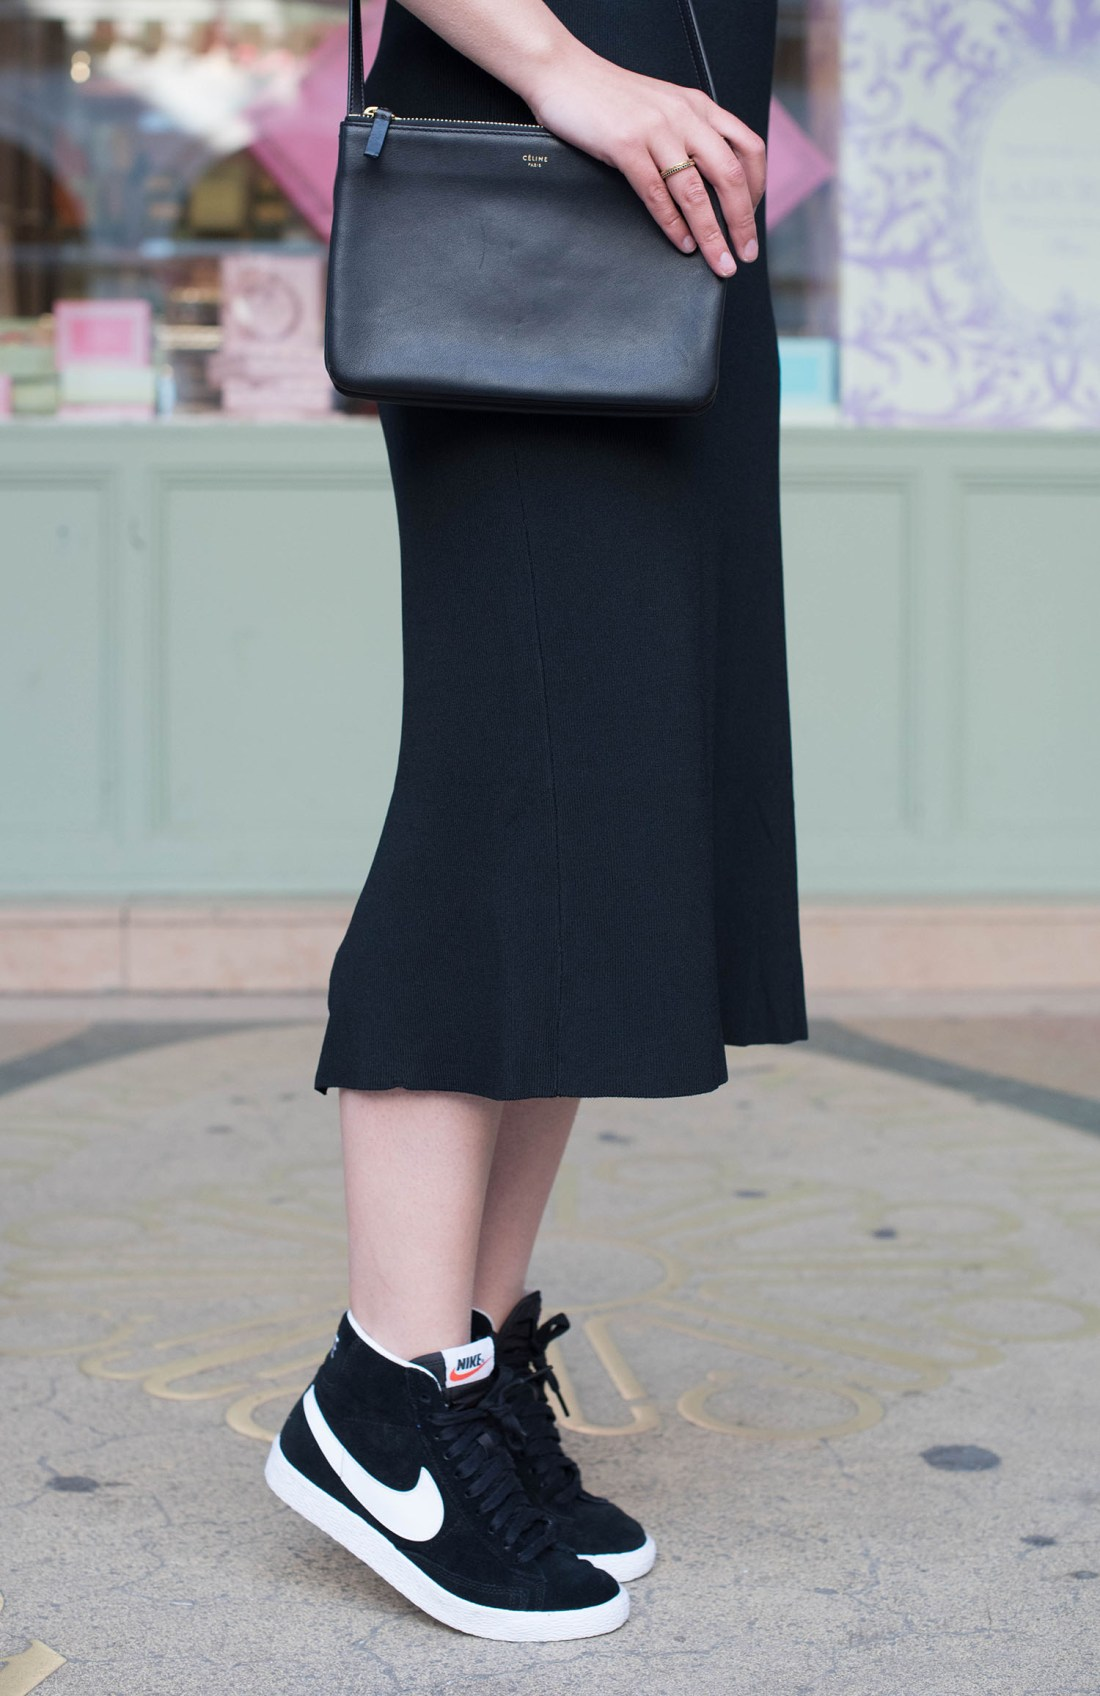 Details of personal style blogger Cee Fardoe of Coco & Vera, wearing a Celine trio bag and Nike Blazer sneakers